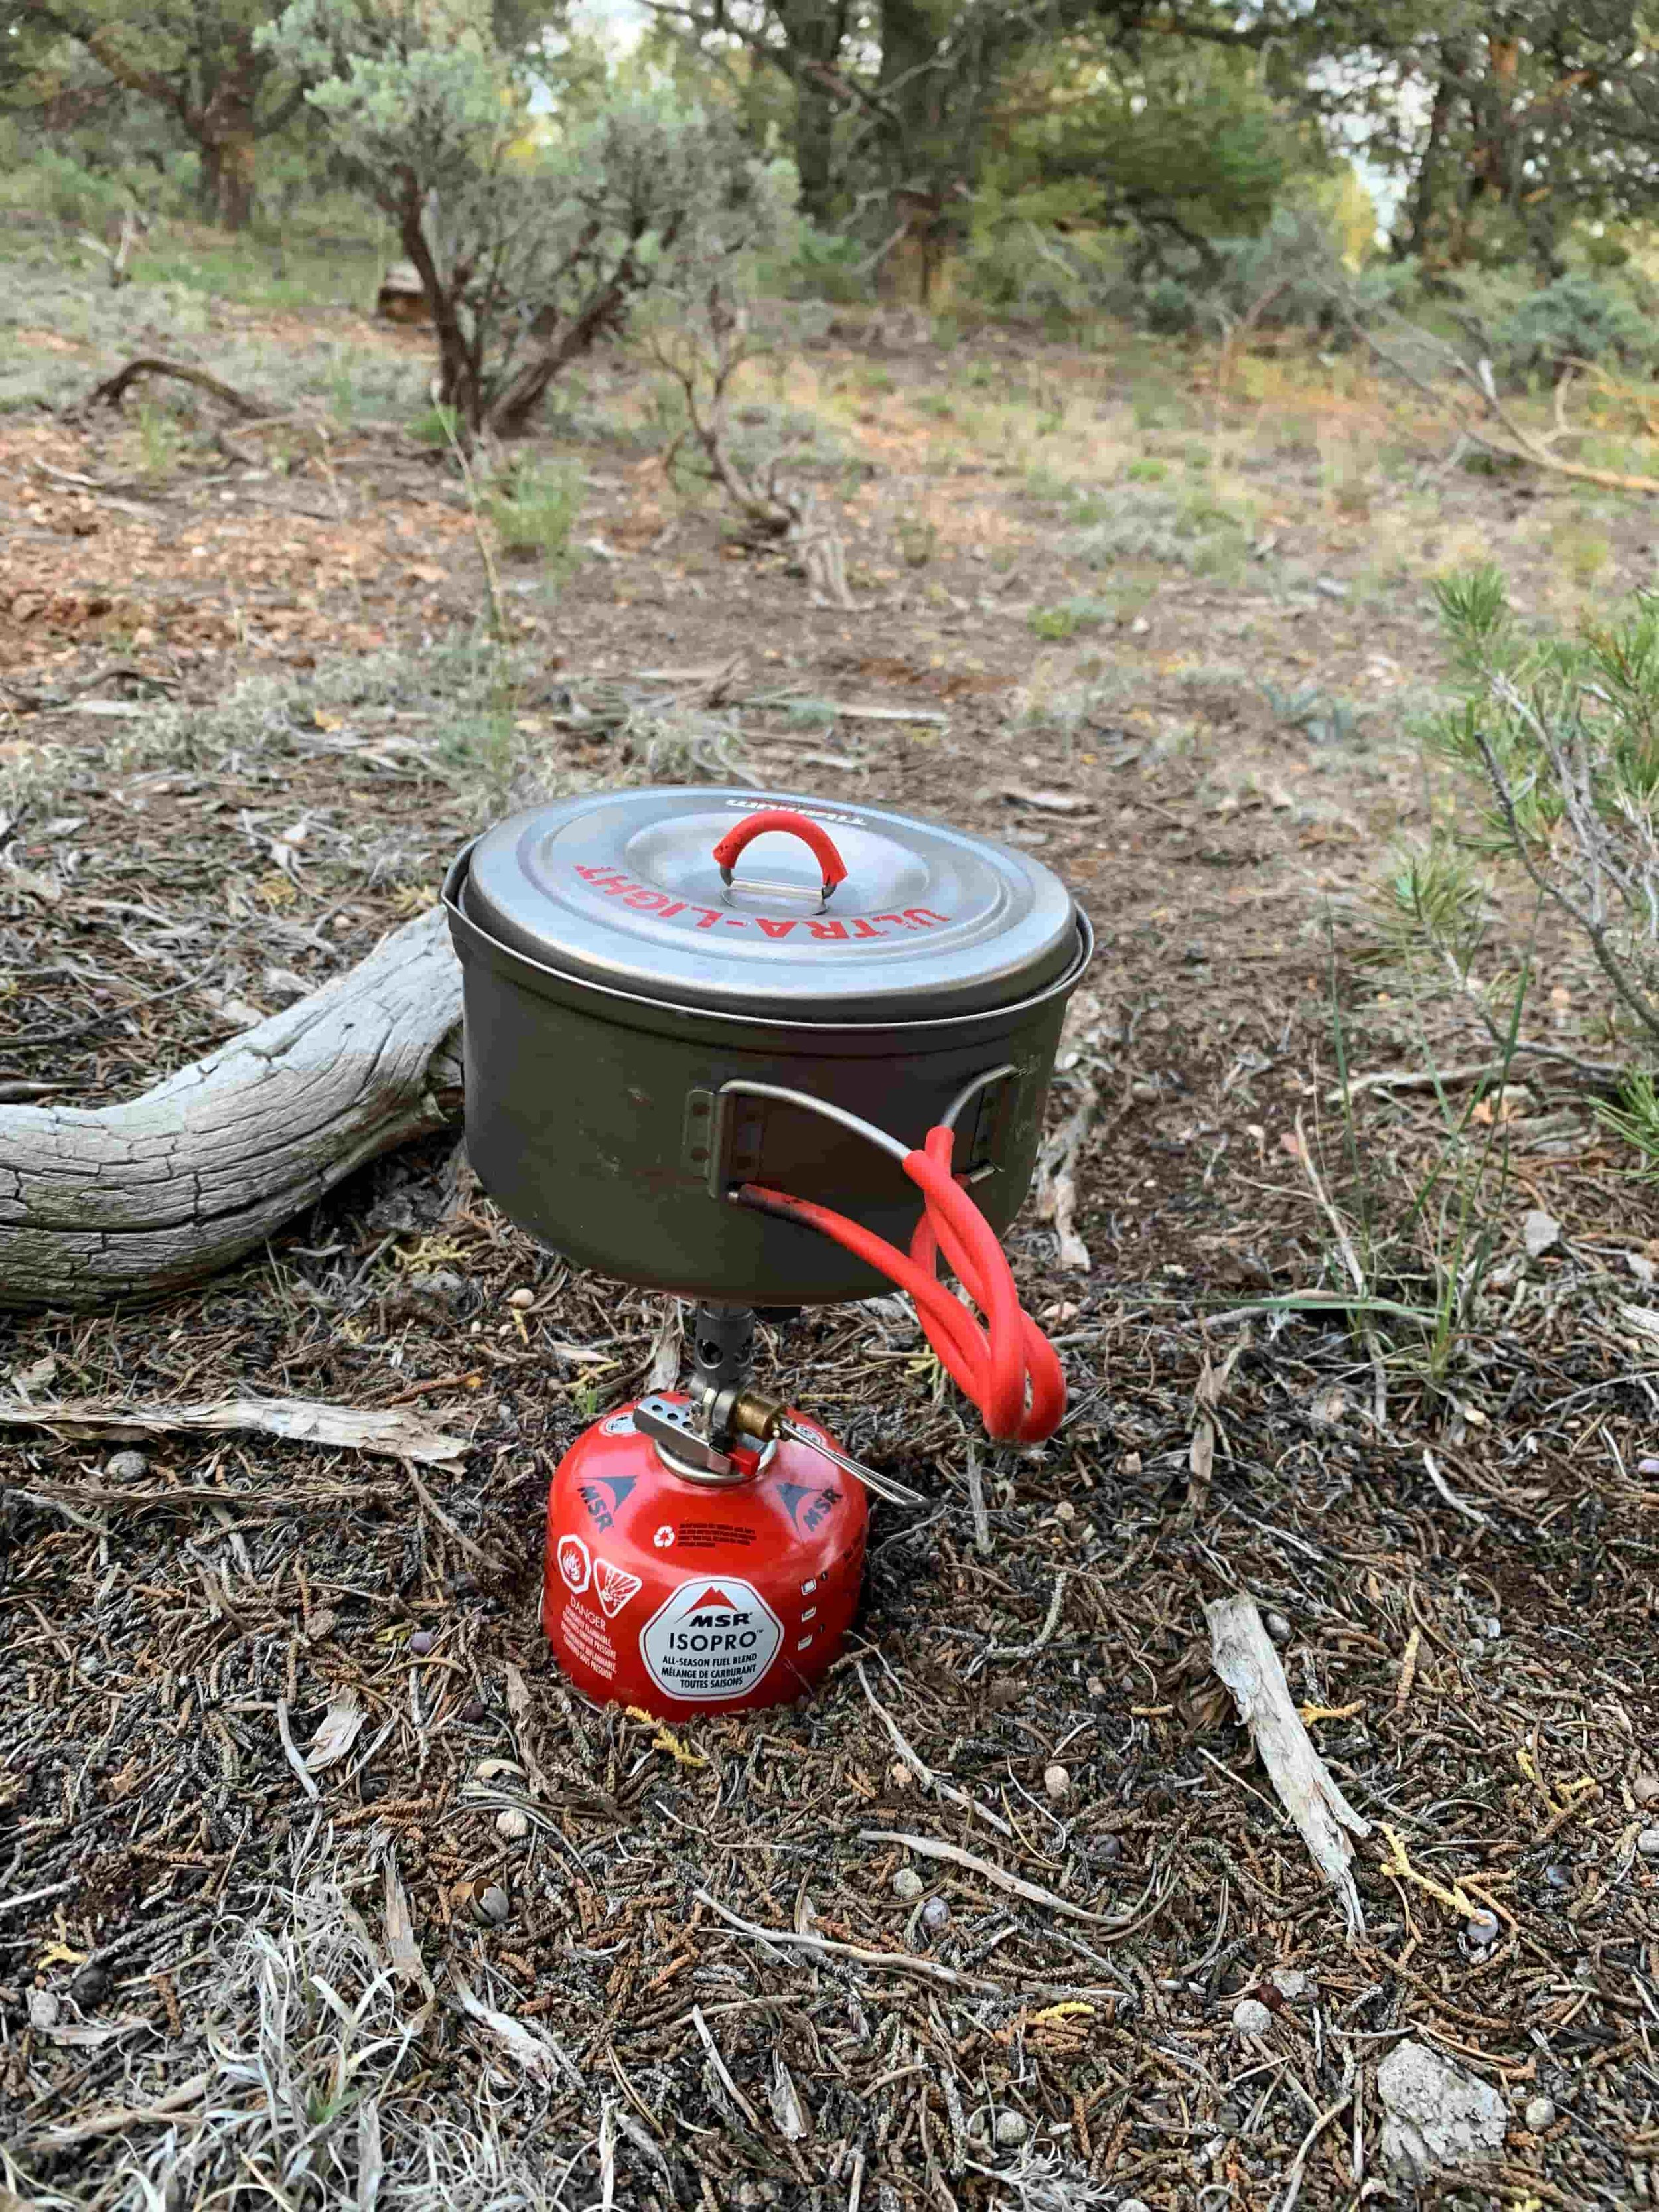 The Evernew Titanium UL Pot cooking dinner on the Arizona Trail. Photo by Naomi Hudetz.